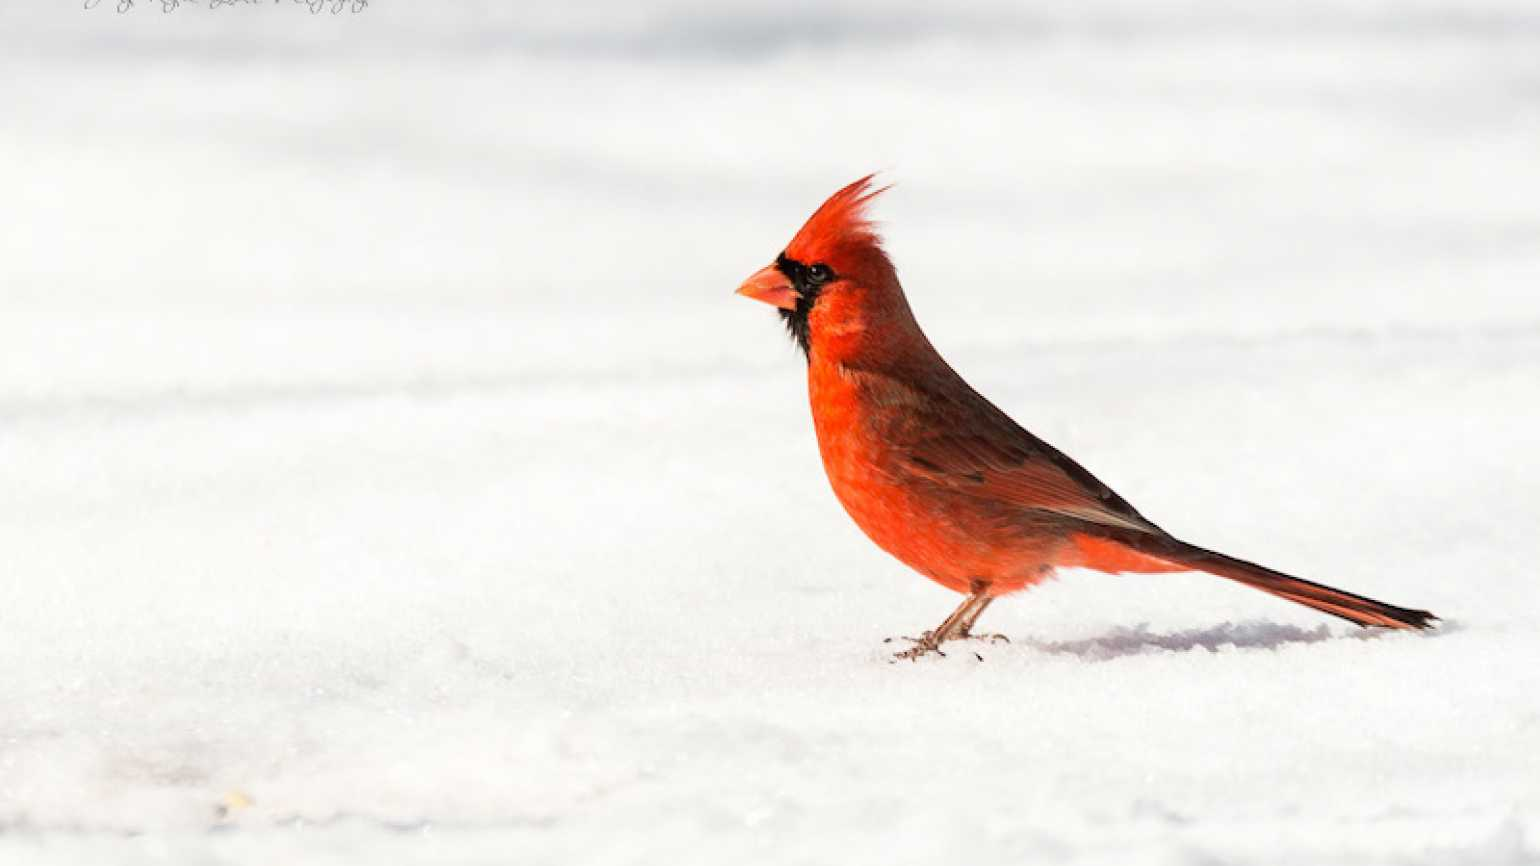 A cardinal in the snow. Photo by Judy Royal Glenn.